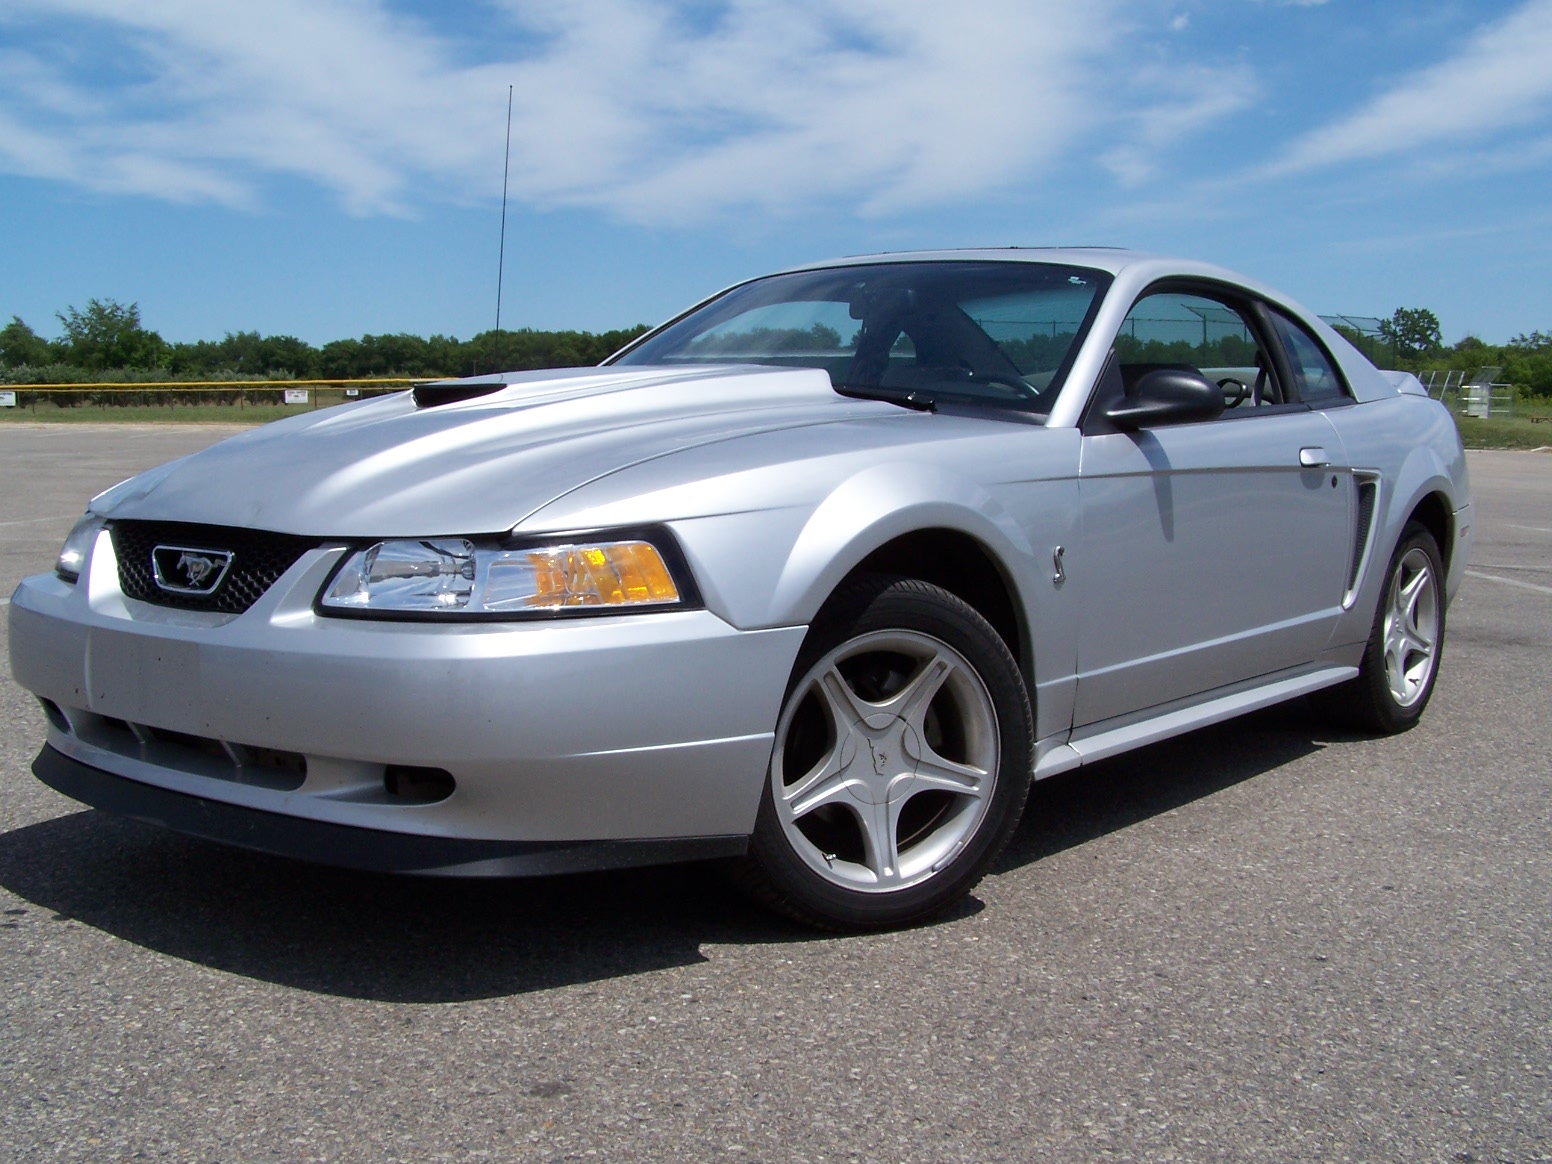 Click image for larger version  Name:mustang.jpg Views:464 Size:461.4 KB ID:16329